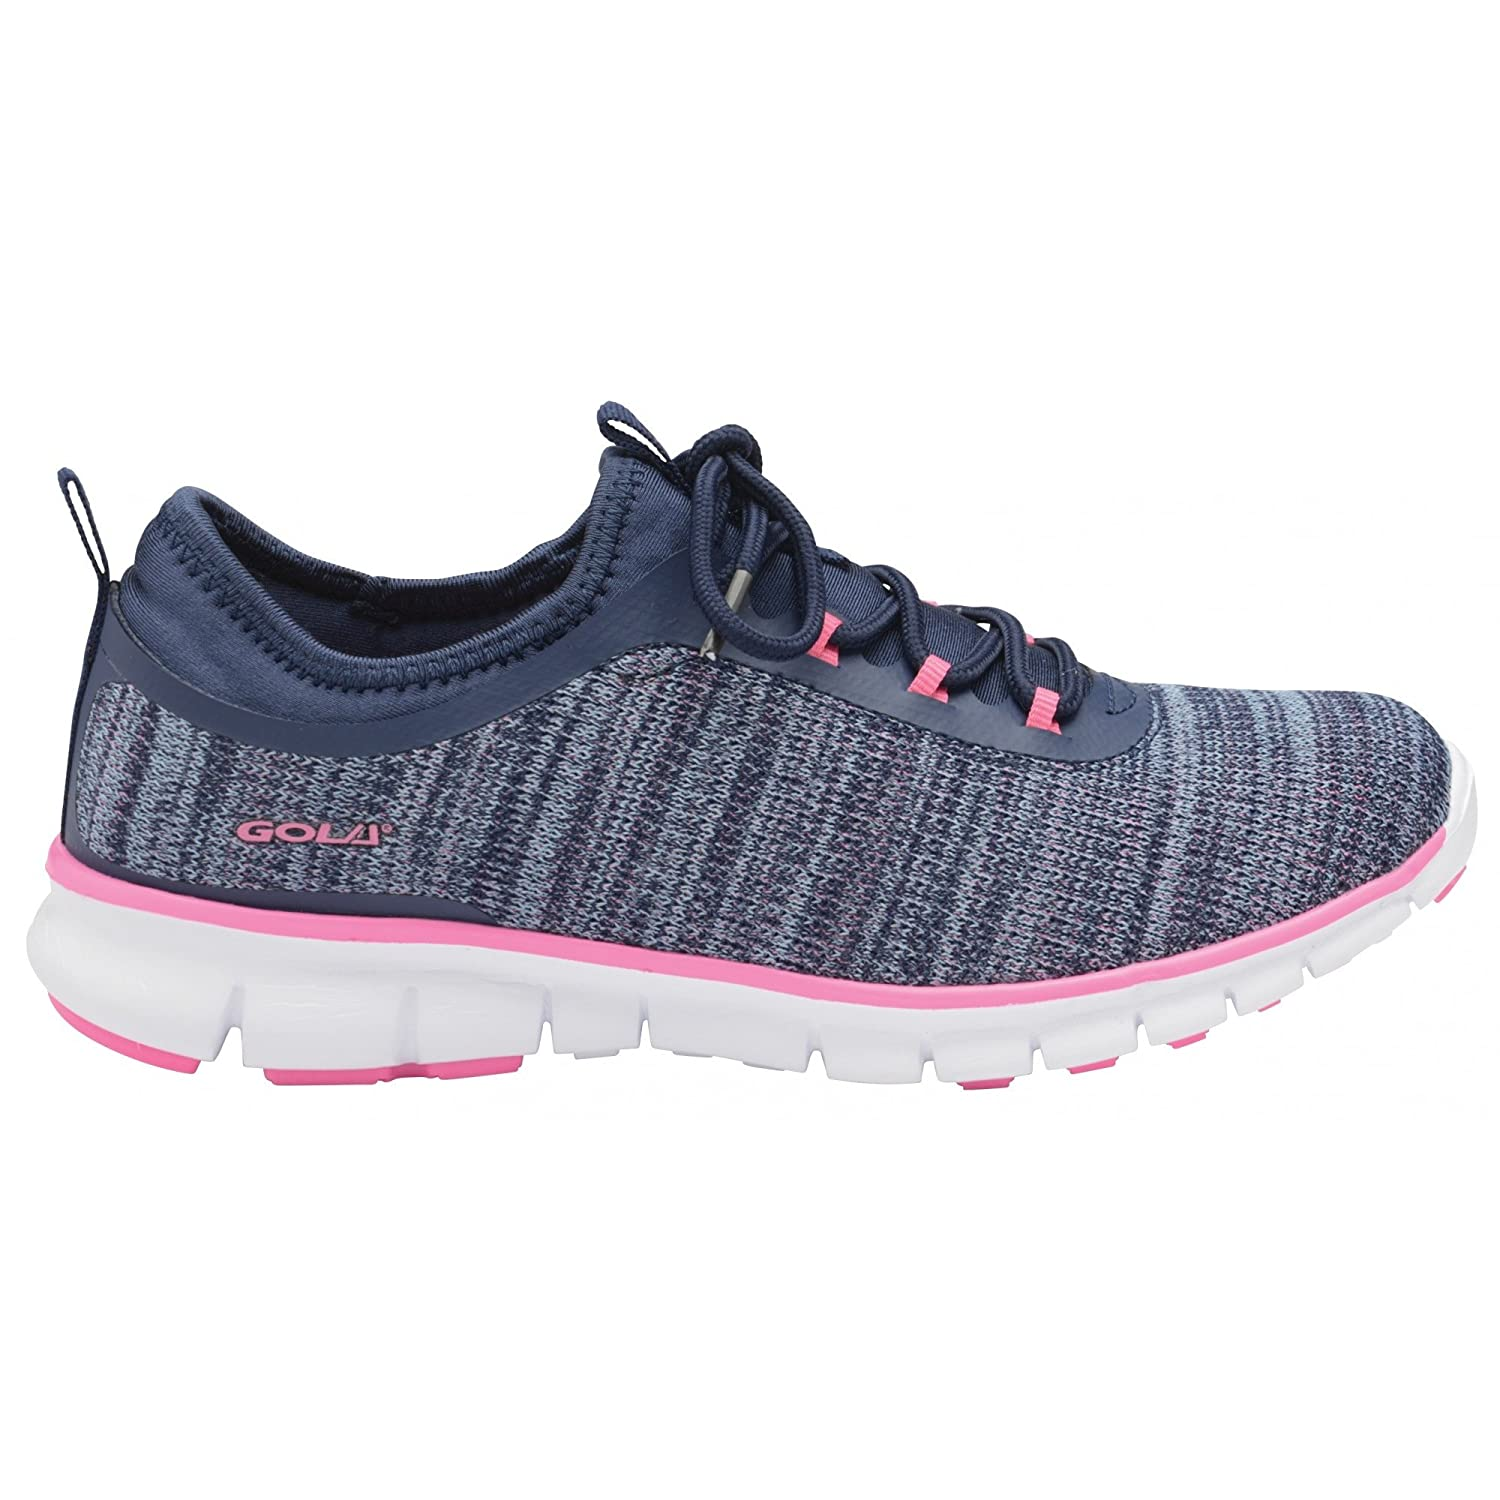 Amazon.com | Gola Womens/Ladies Lovana Sneakers (6 US) (Navy/Pink) | Fashion Sneakers